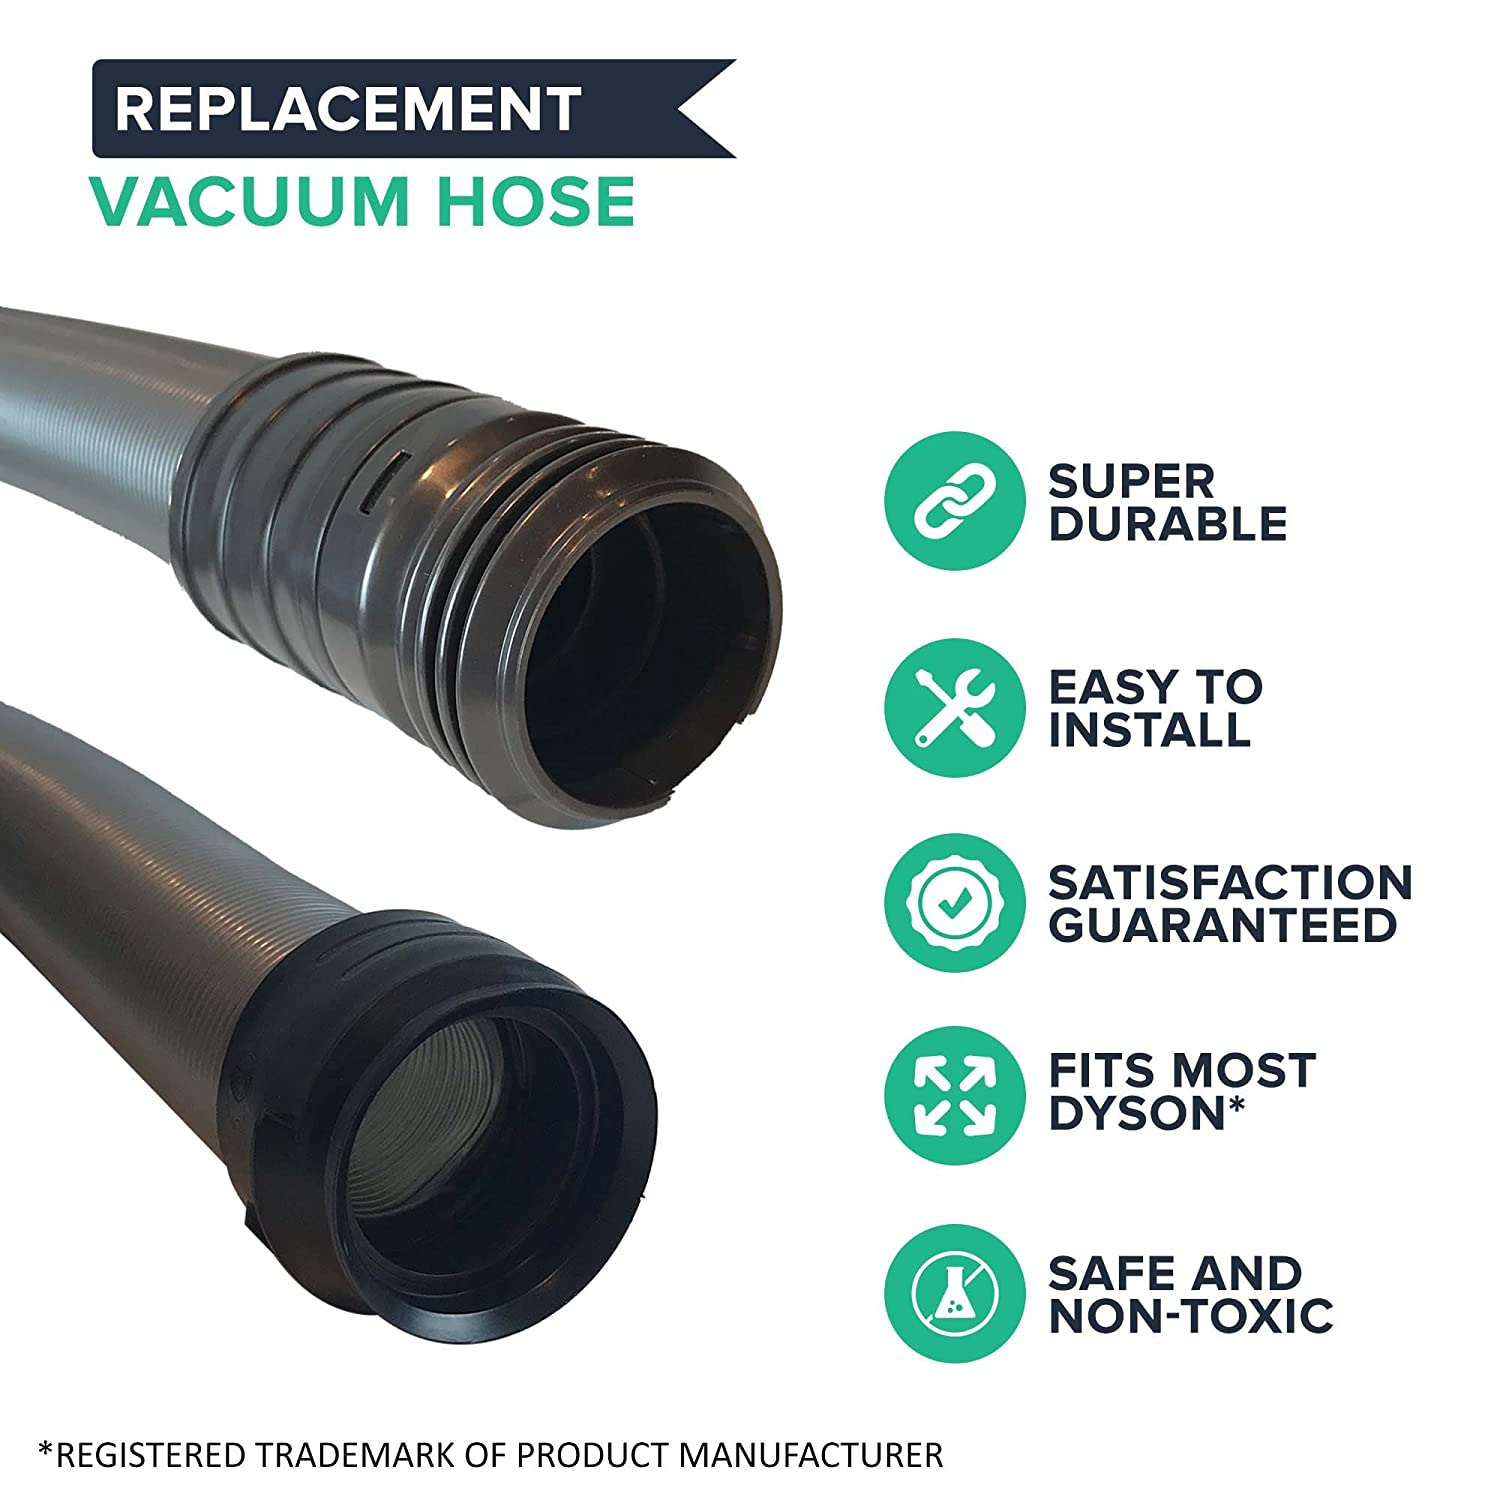 Amazon.com - Replacement for Dyson DC17 Hose, Compatible With Part #  911645-07, 911645-02, 911645-04 & 911645-05, by Think Crucial - Household  Vacuum Hoses